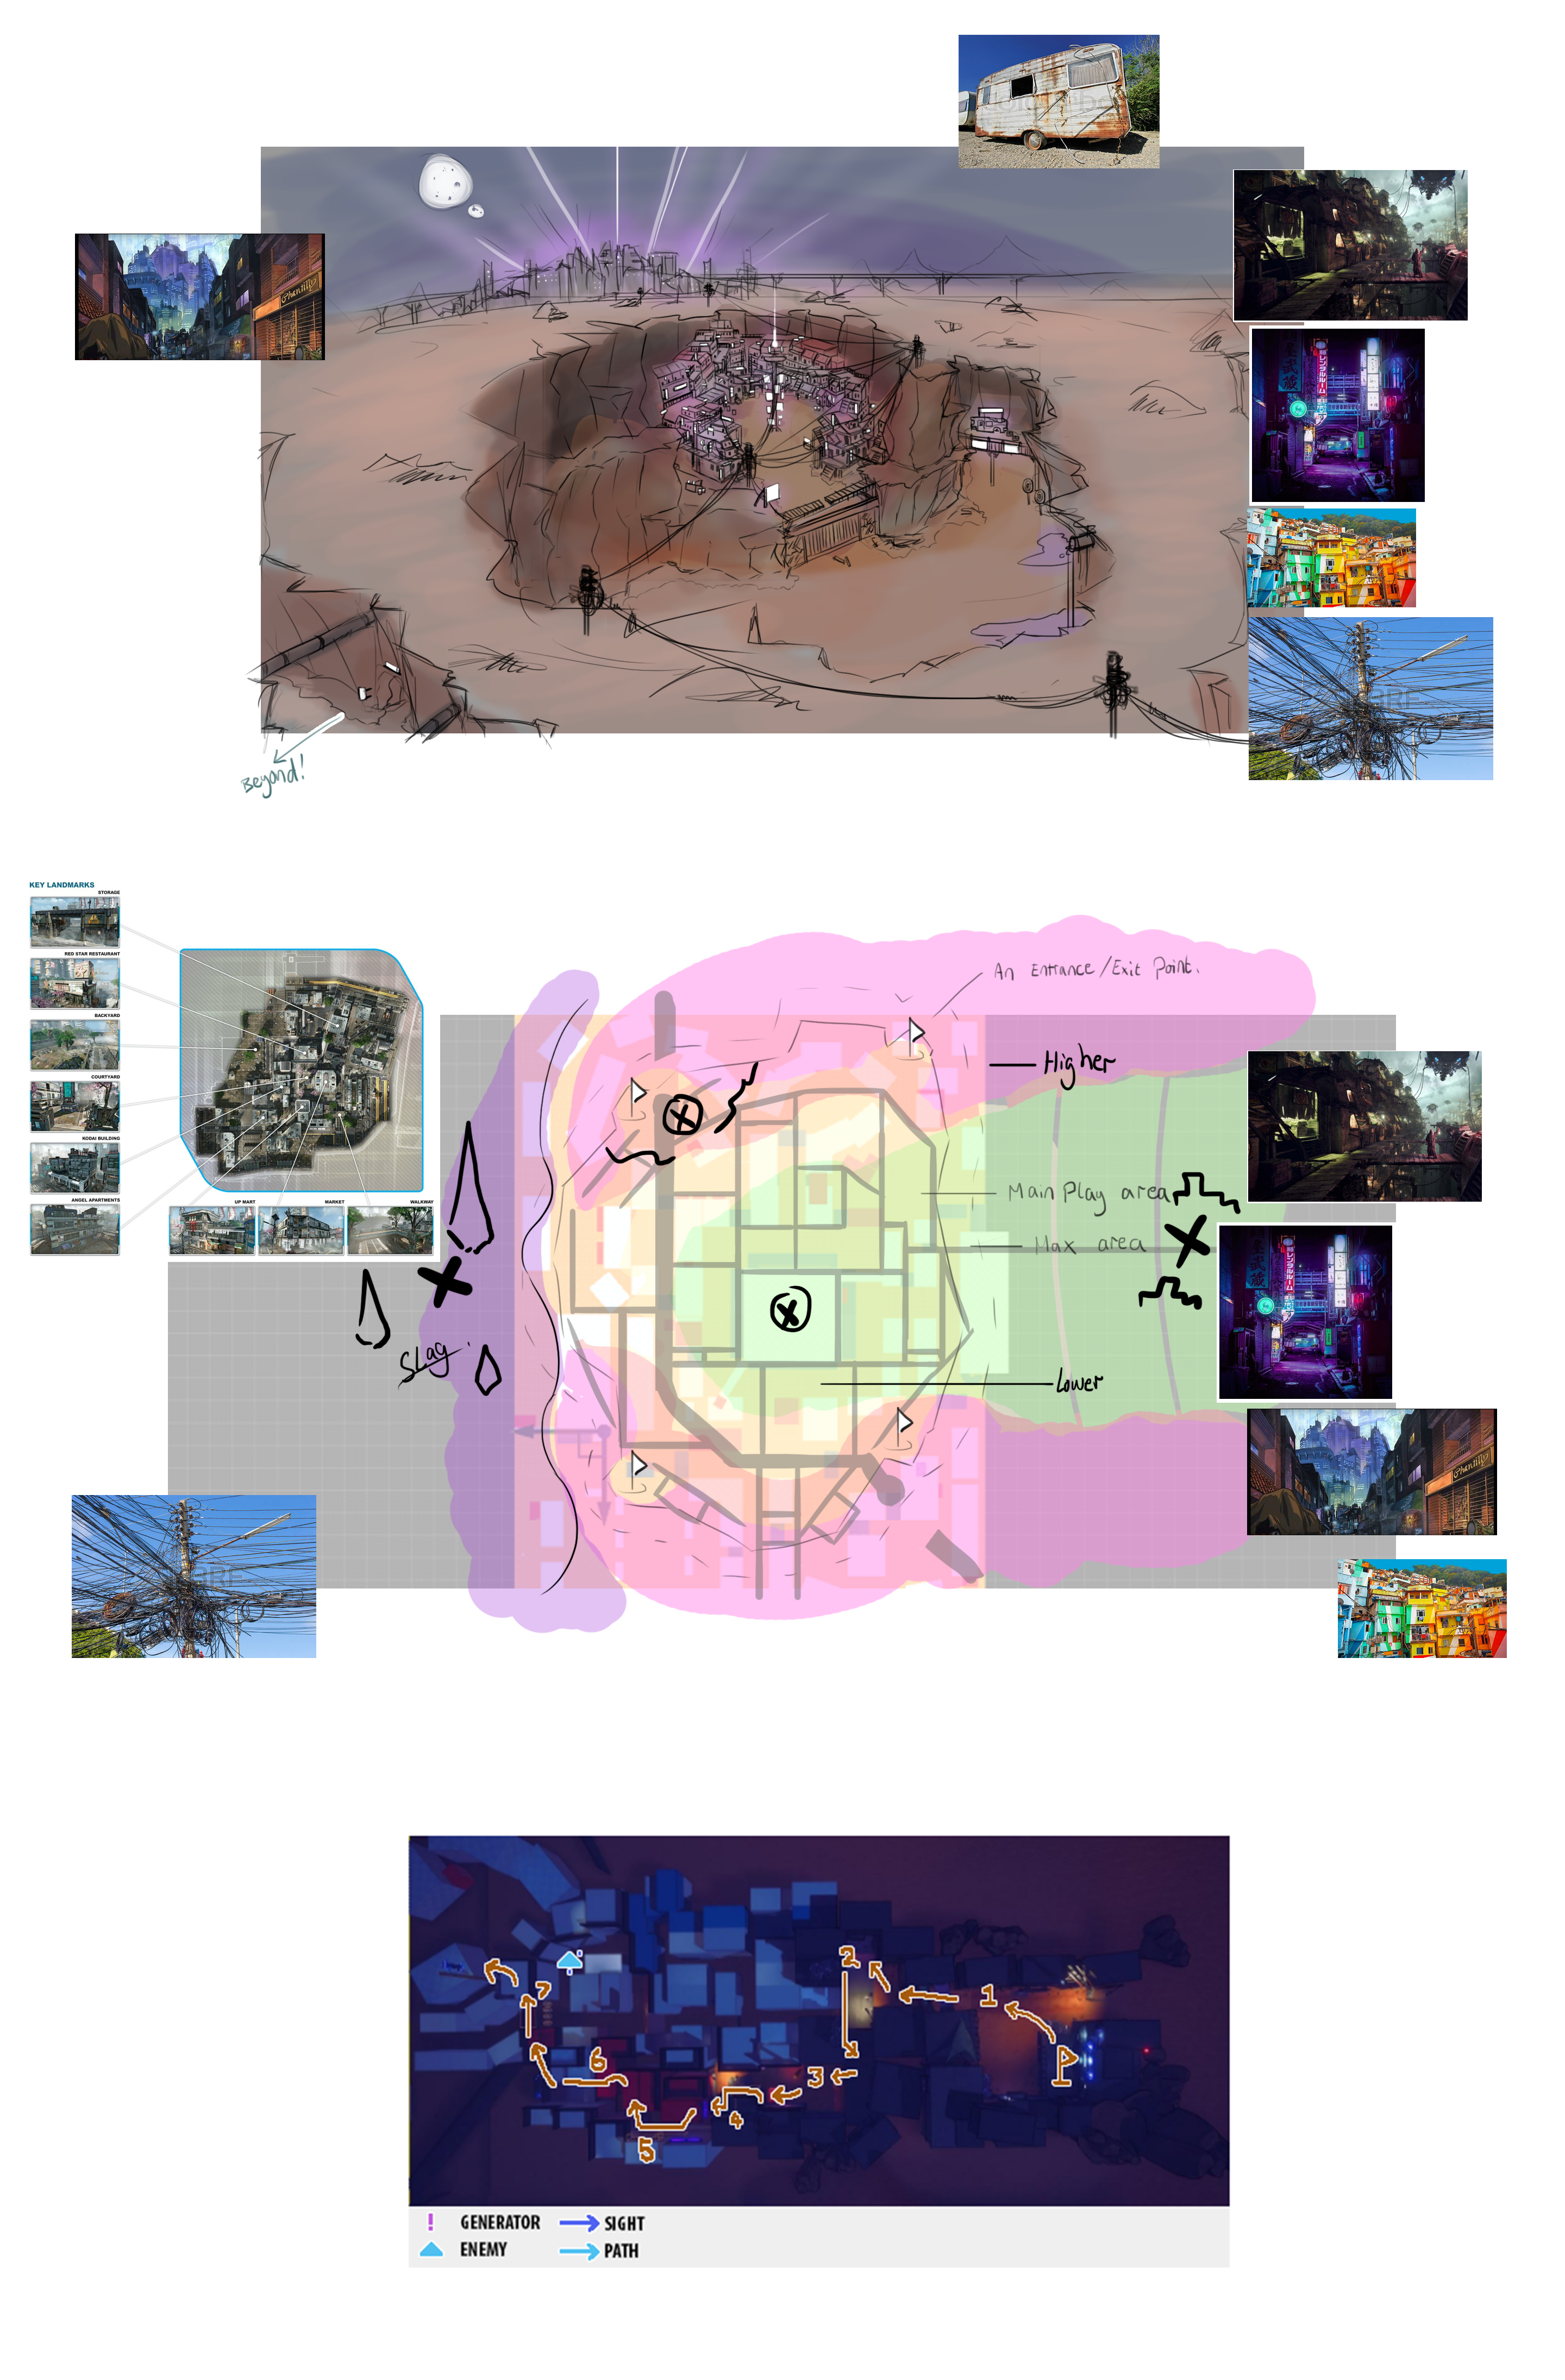 Location Conceptual Stages